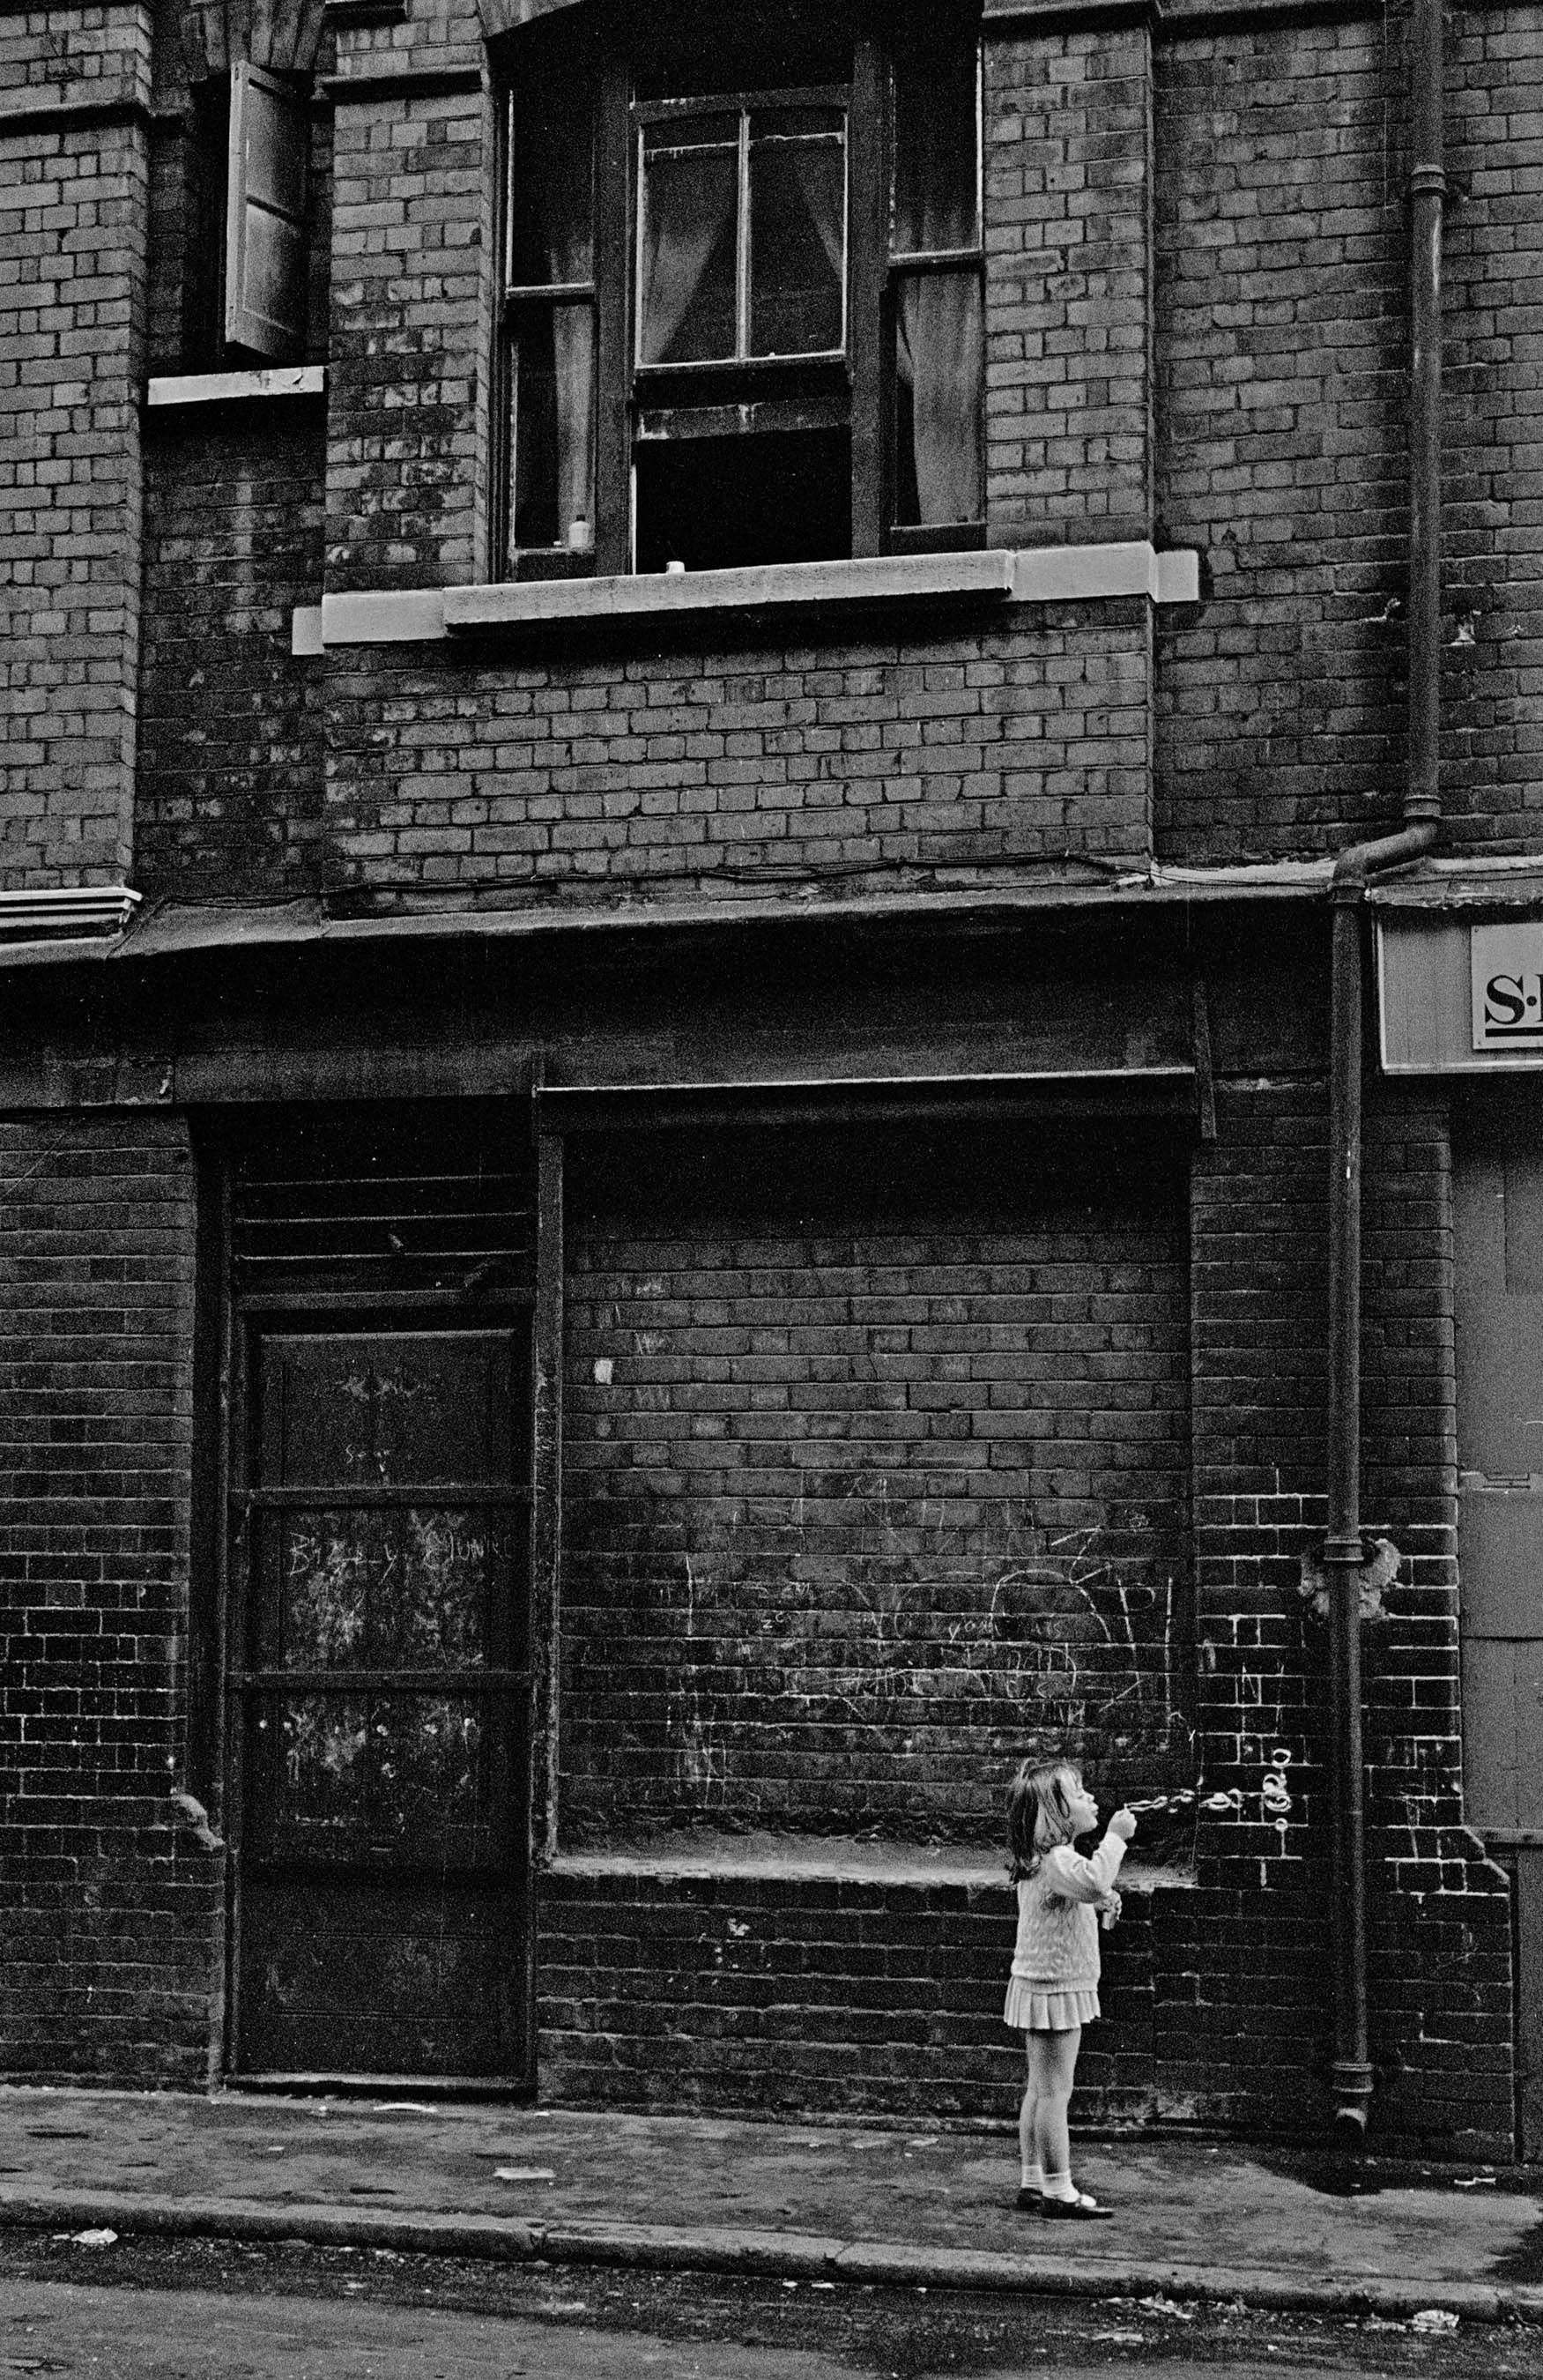 Child Blowing Bubbles In The Street Whitechapel 1969 32 5